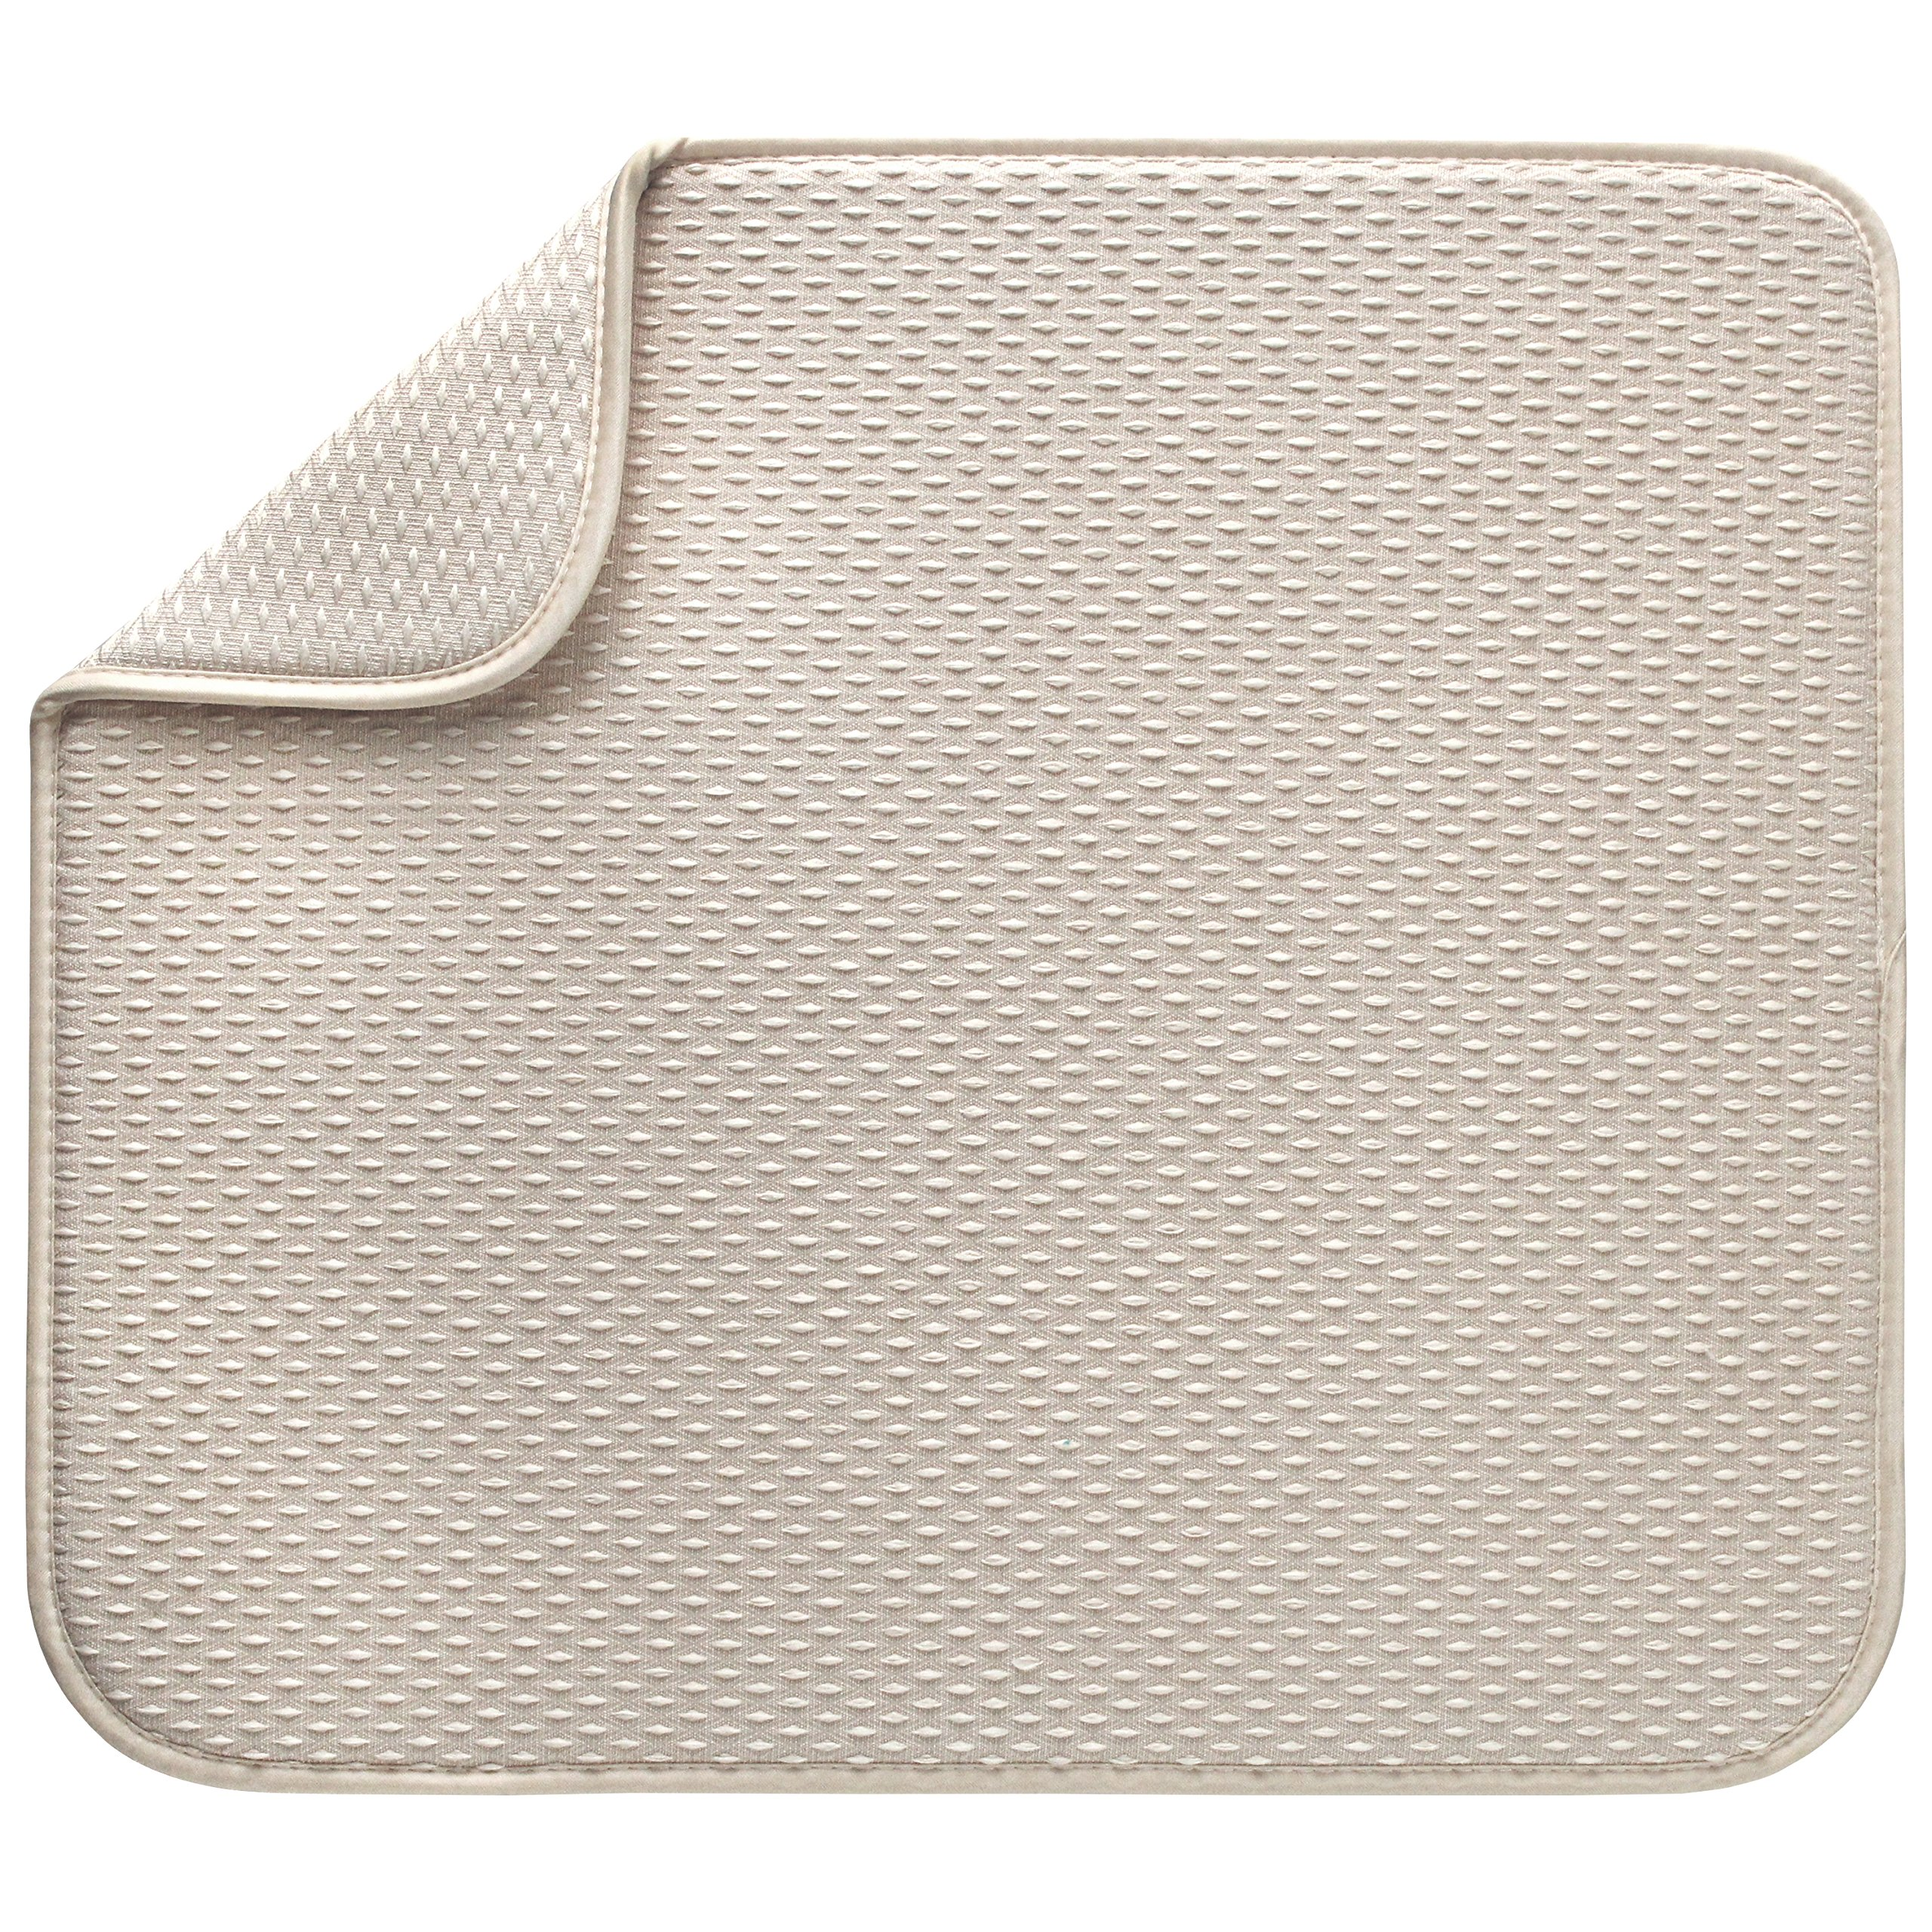 Envision Home Microfiber Dish Drying Mat, 16 by 18-Inch, Cream by Envision Home